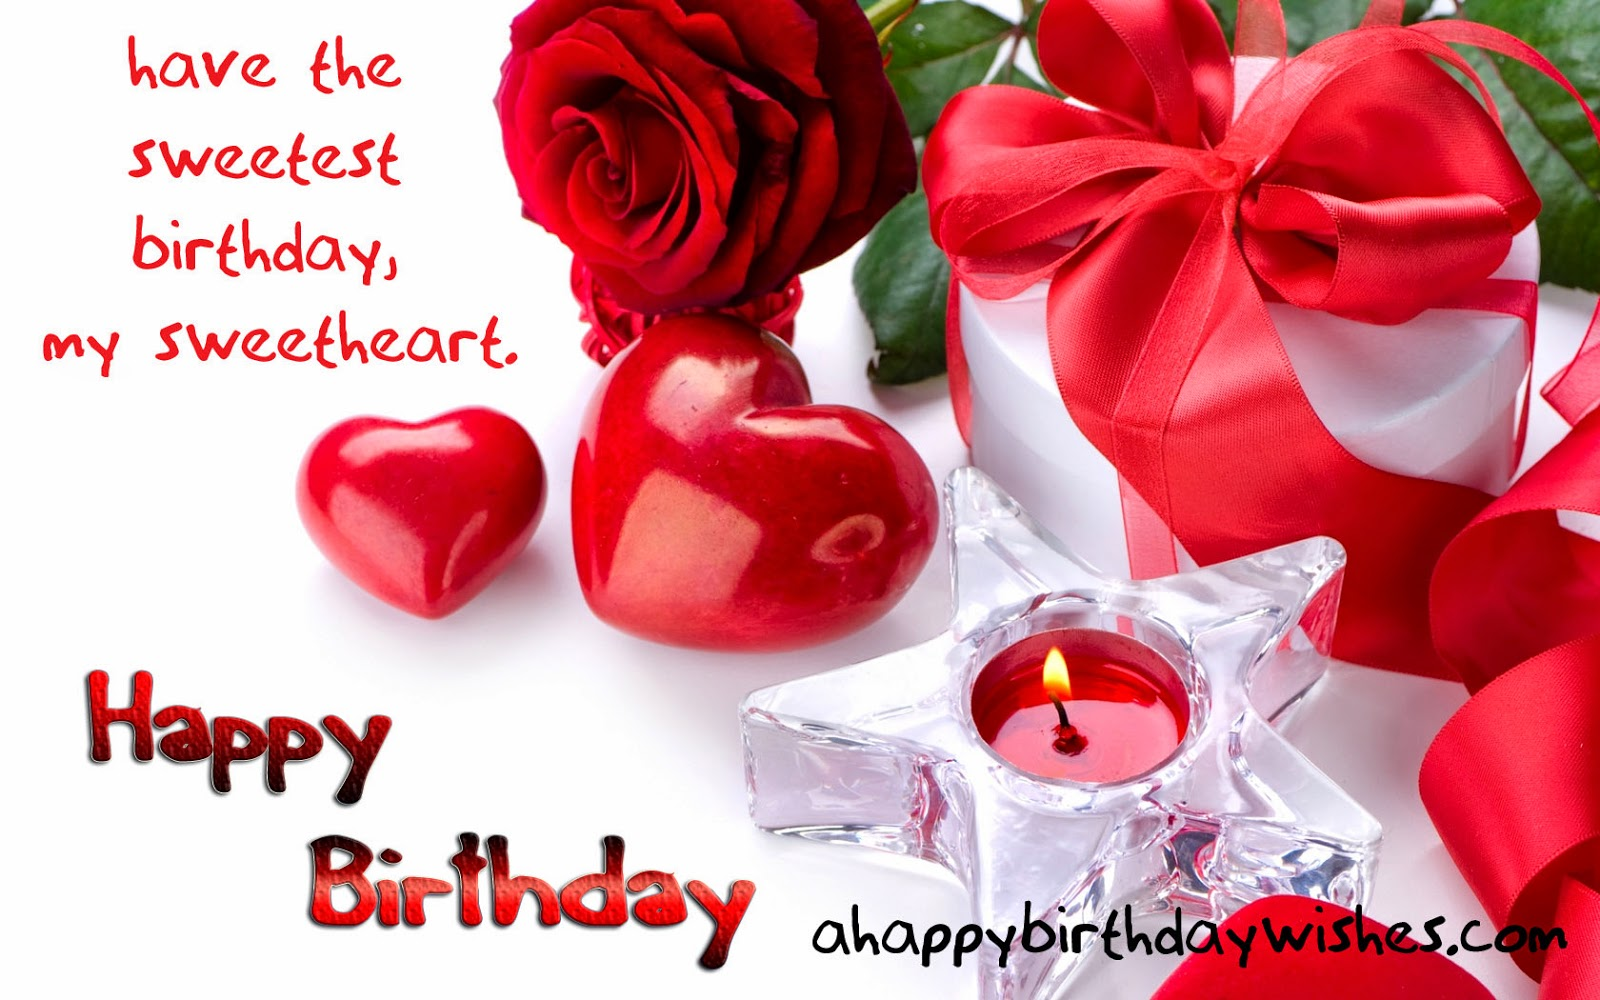 birthday wishes images for lover ; heartfelt-birthday-wishes-that-can-express-your-love-to-girlfriend-on-her-birthday-1